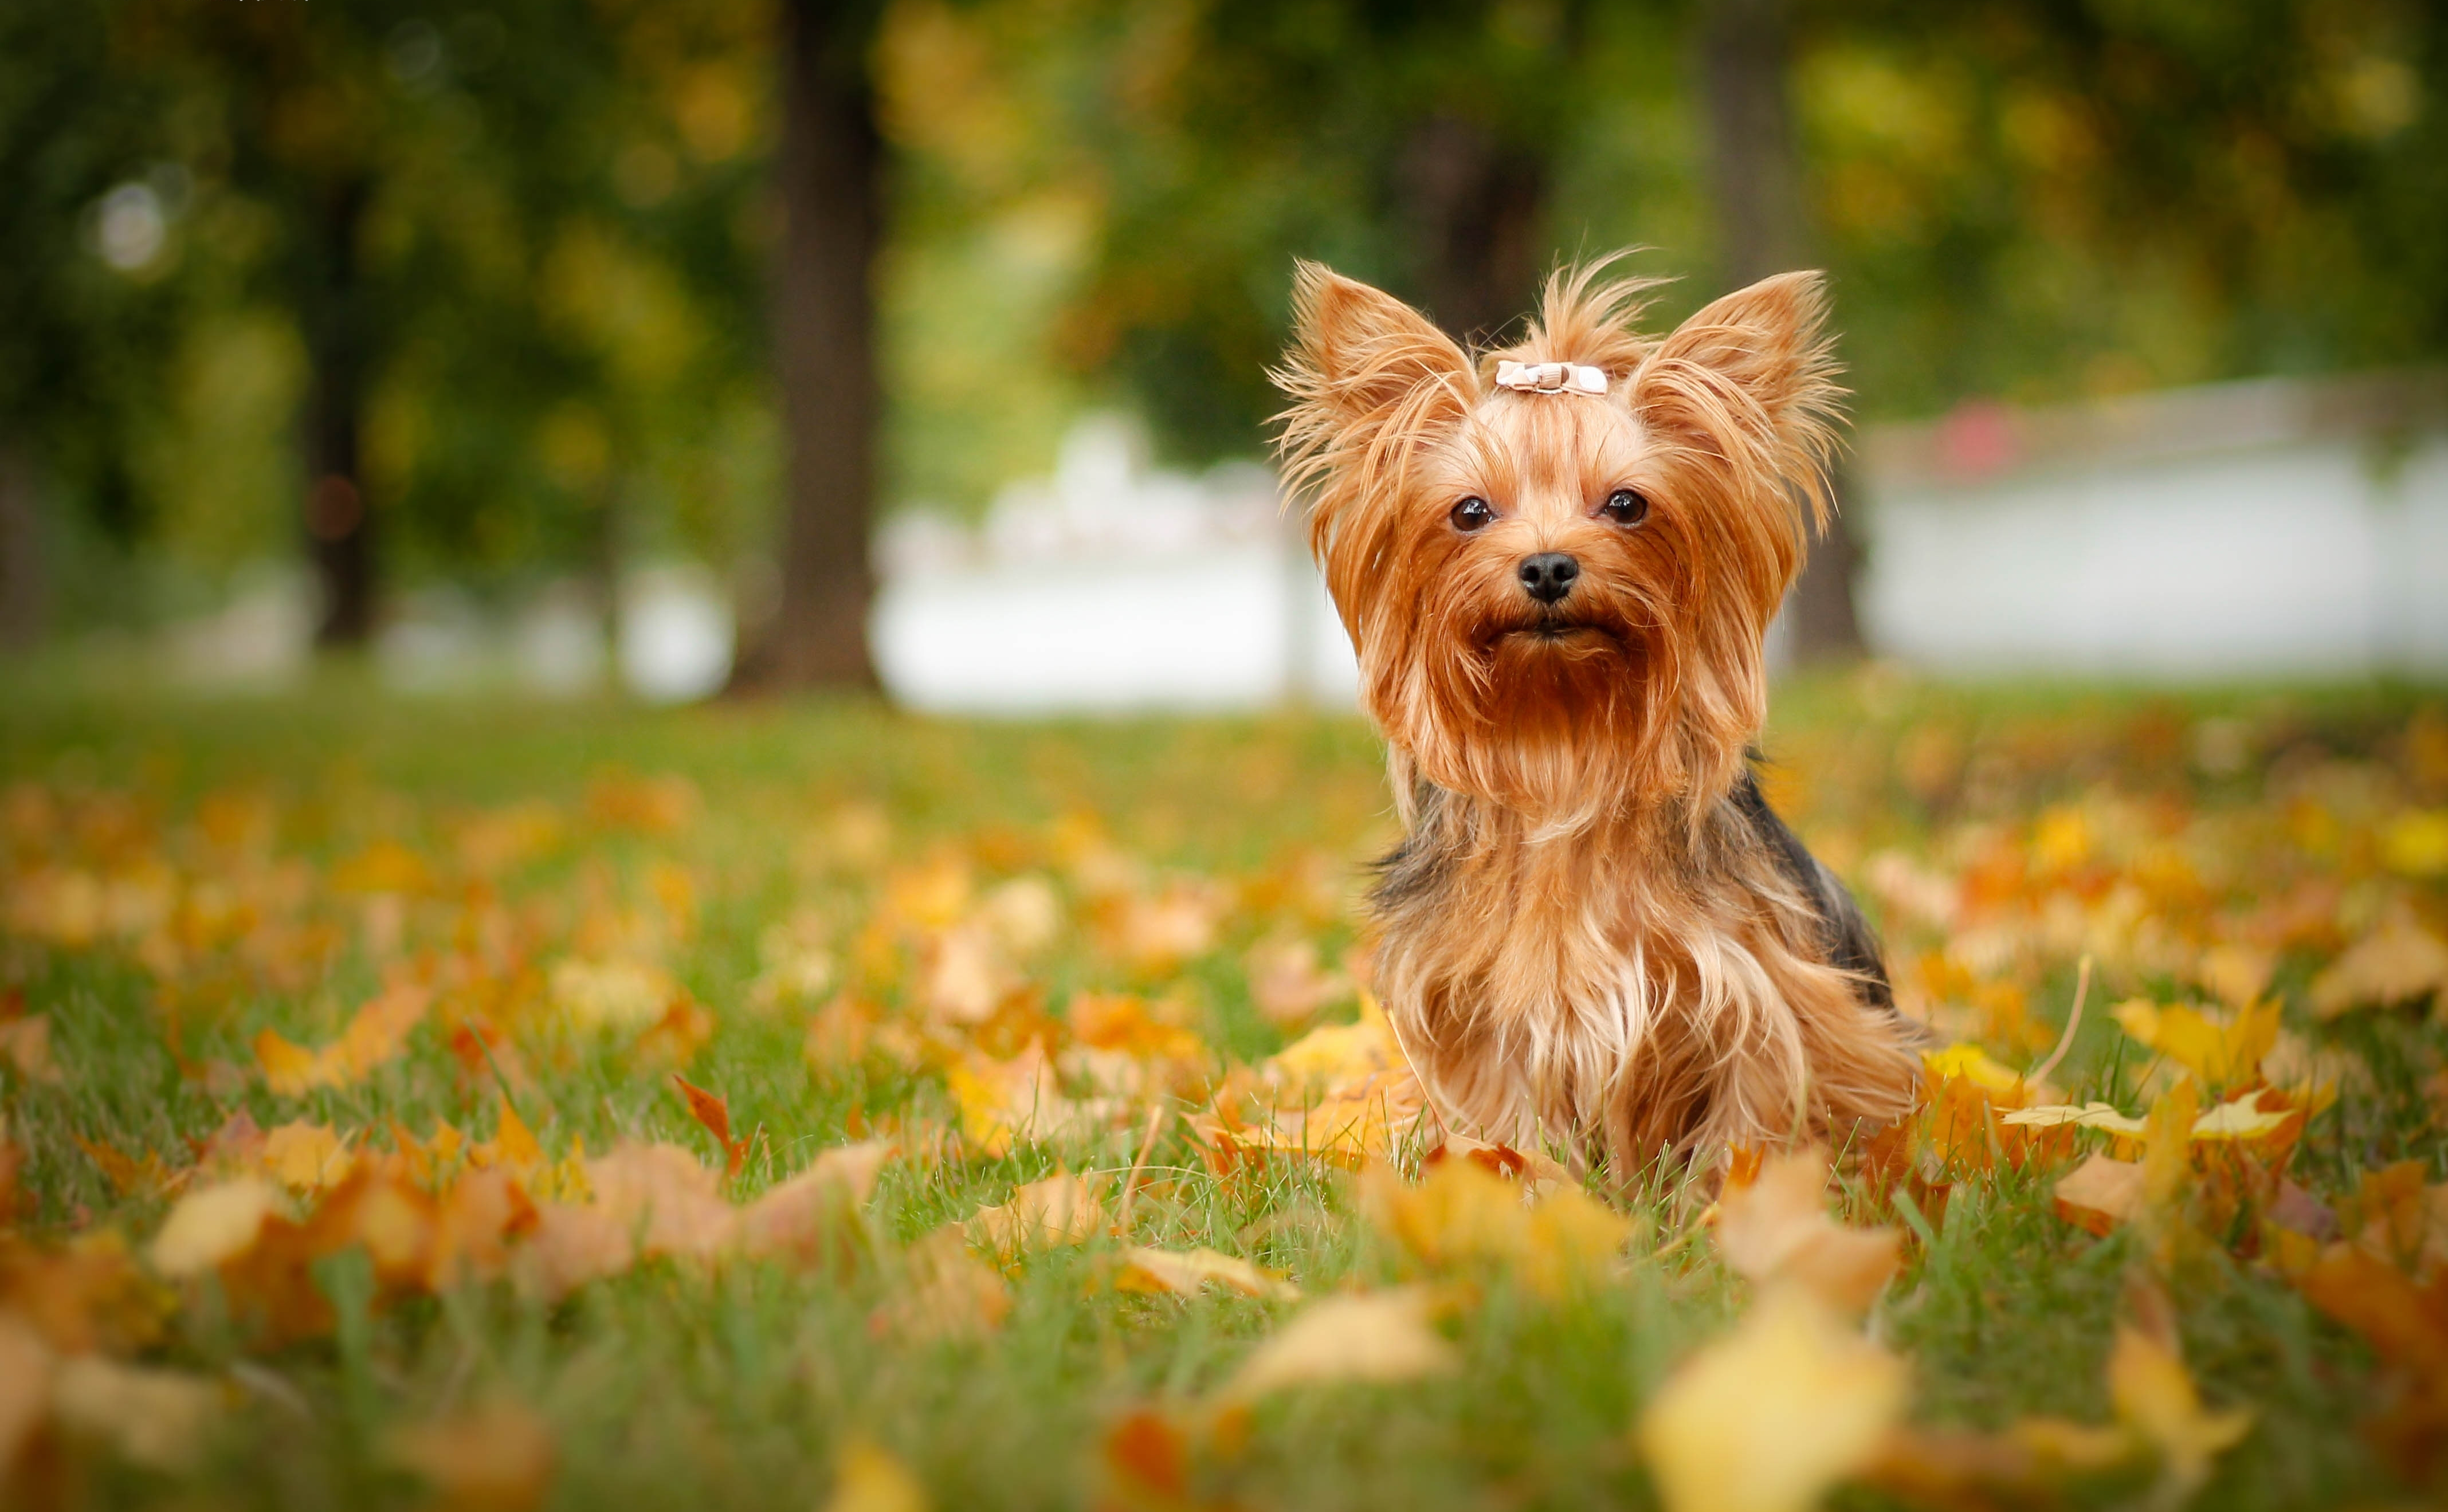 Yorkshire Terrier 4k Ultra HD Wallpaper | Background Image | 4272x2639 | ID:747359 - Wallpaper Abyss